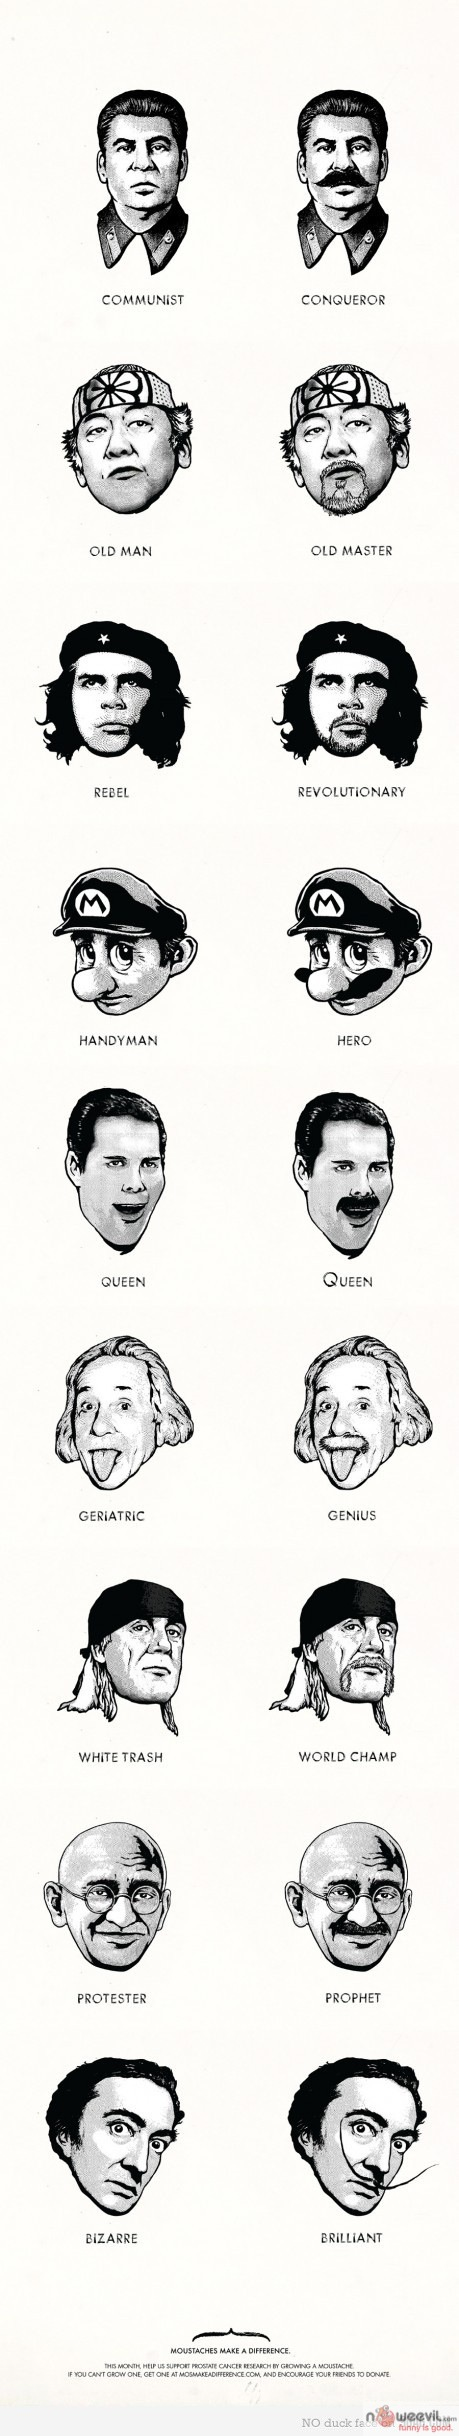 mustache makes a difference